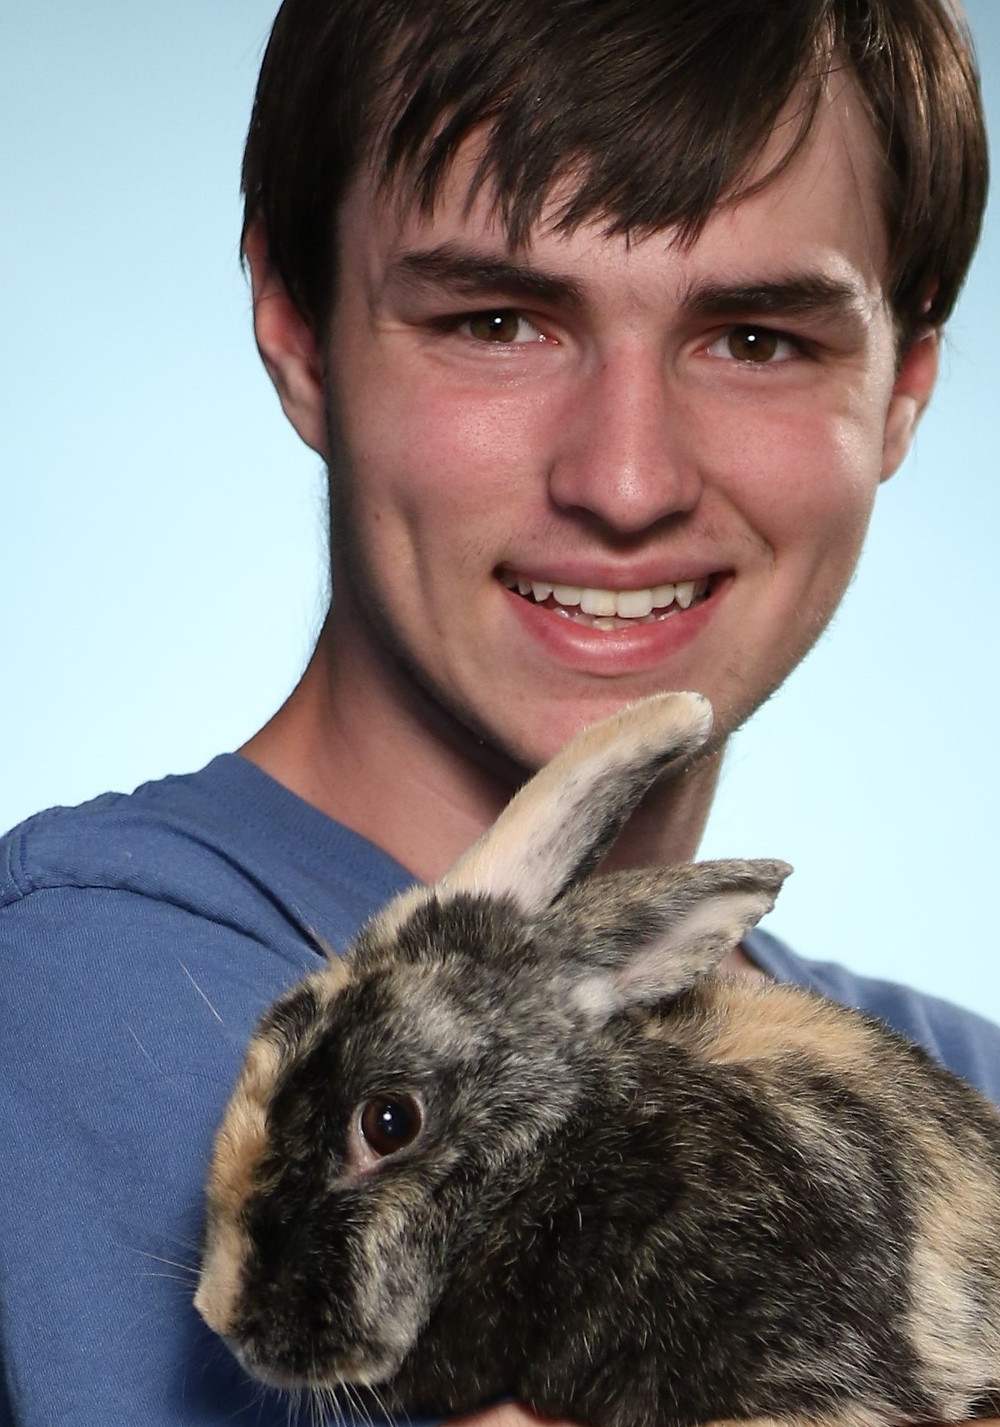 Caleb Smith holding Harley, a rare harlequin rabbit